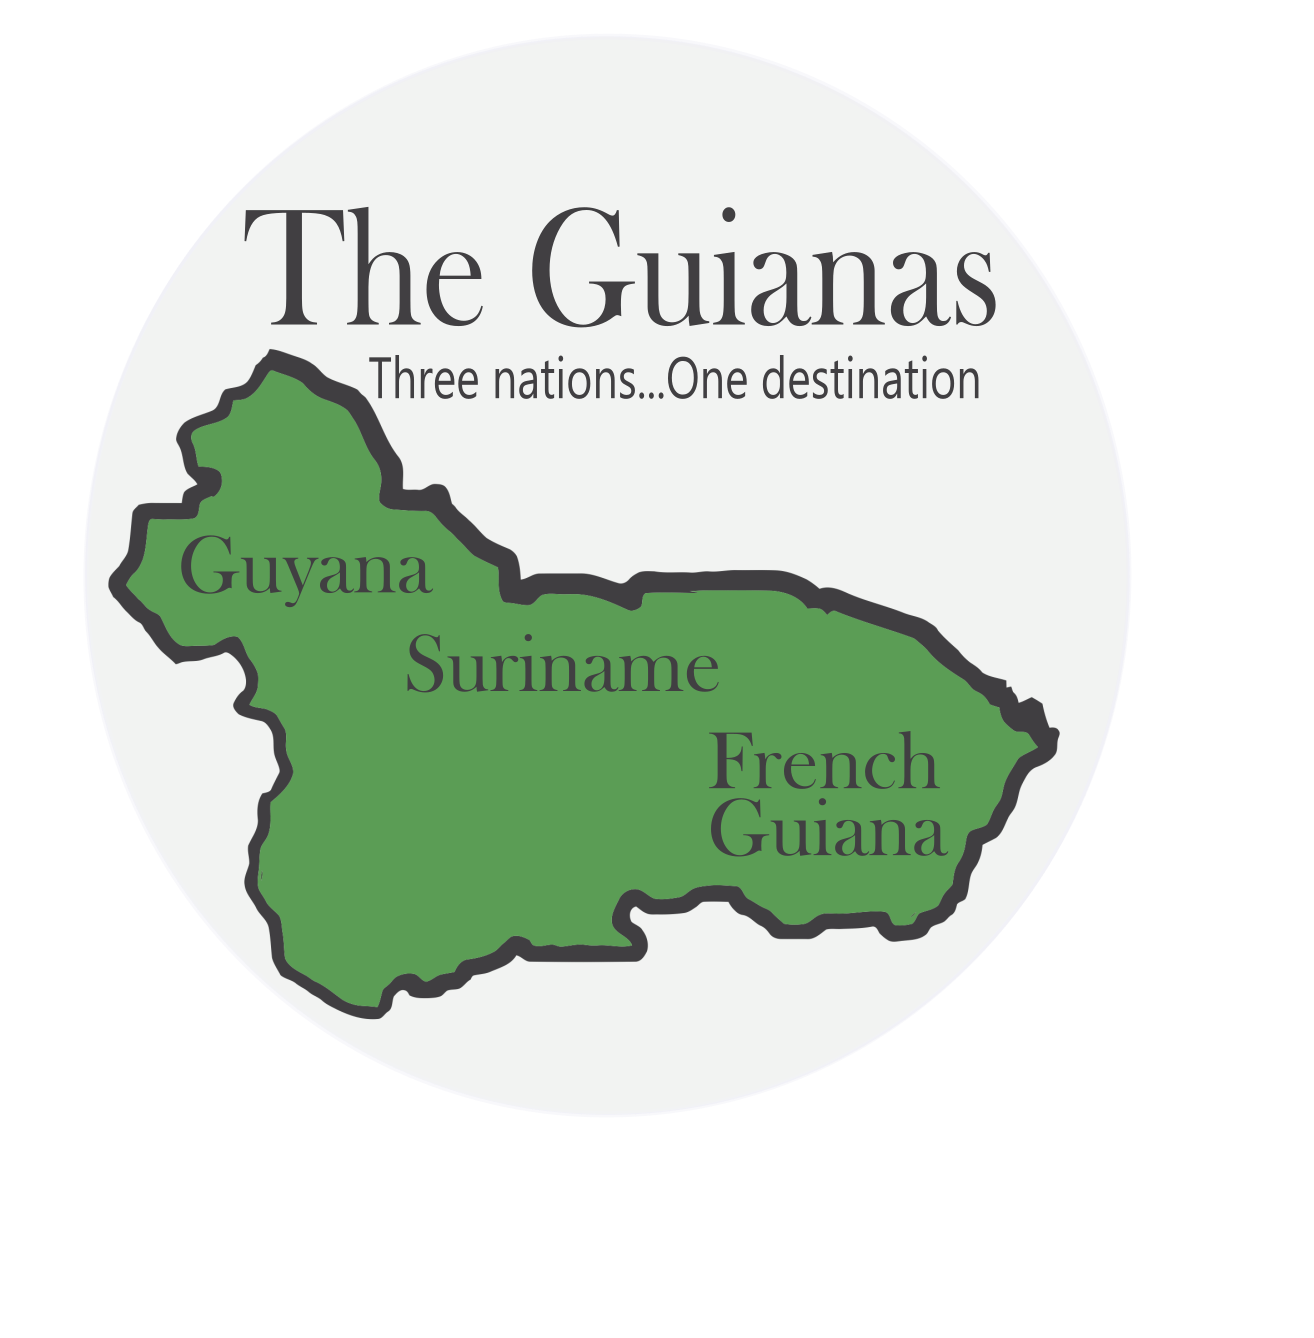 The Visit Guianas